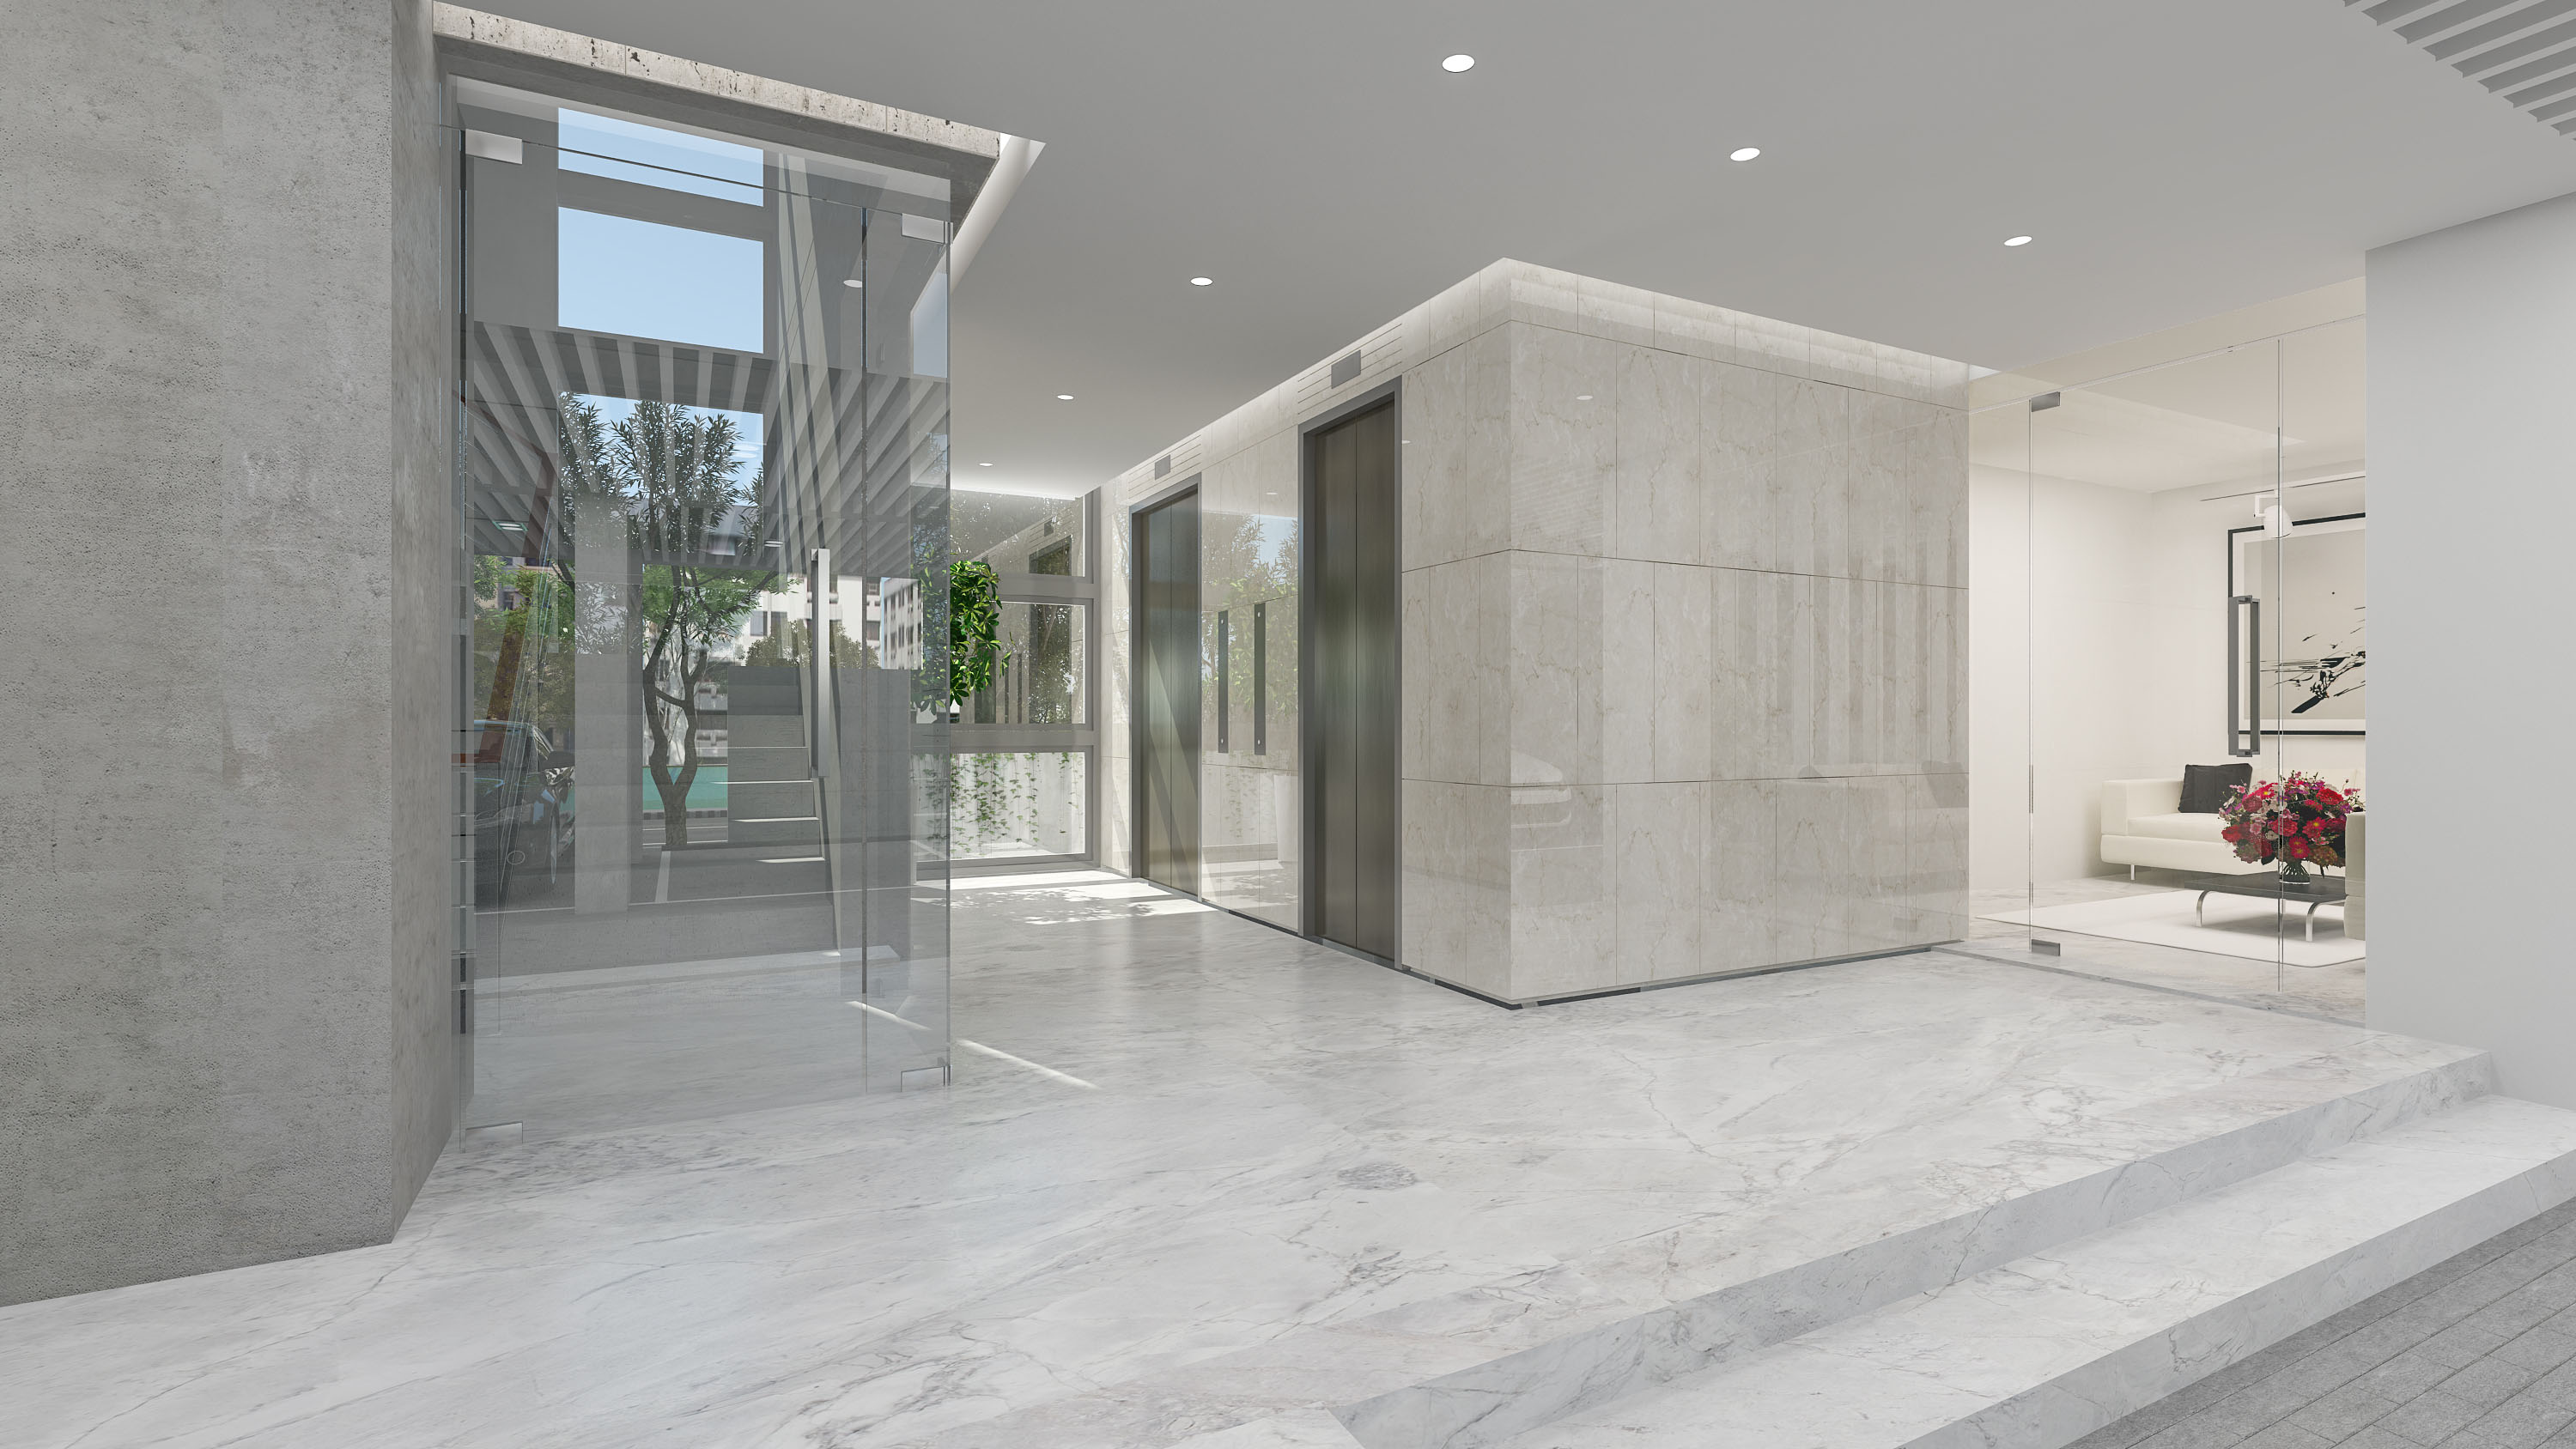 Photos of Assure Oasis Lift Lobby